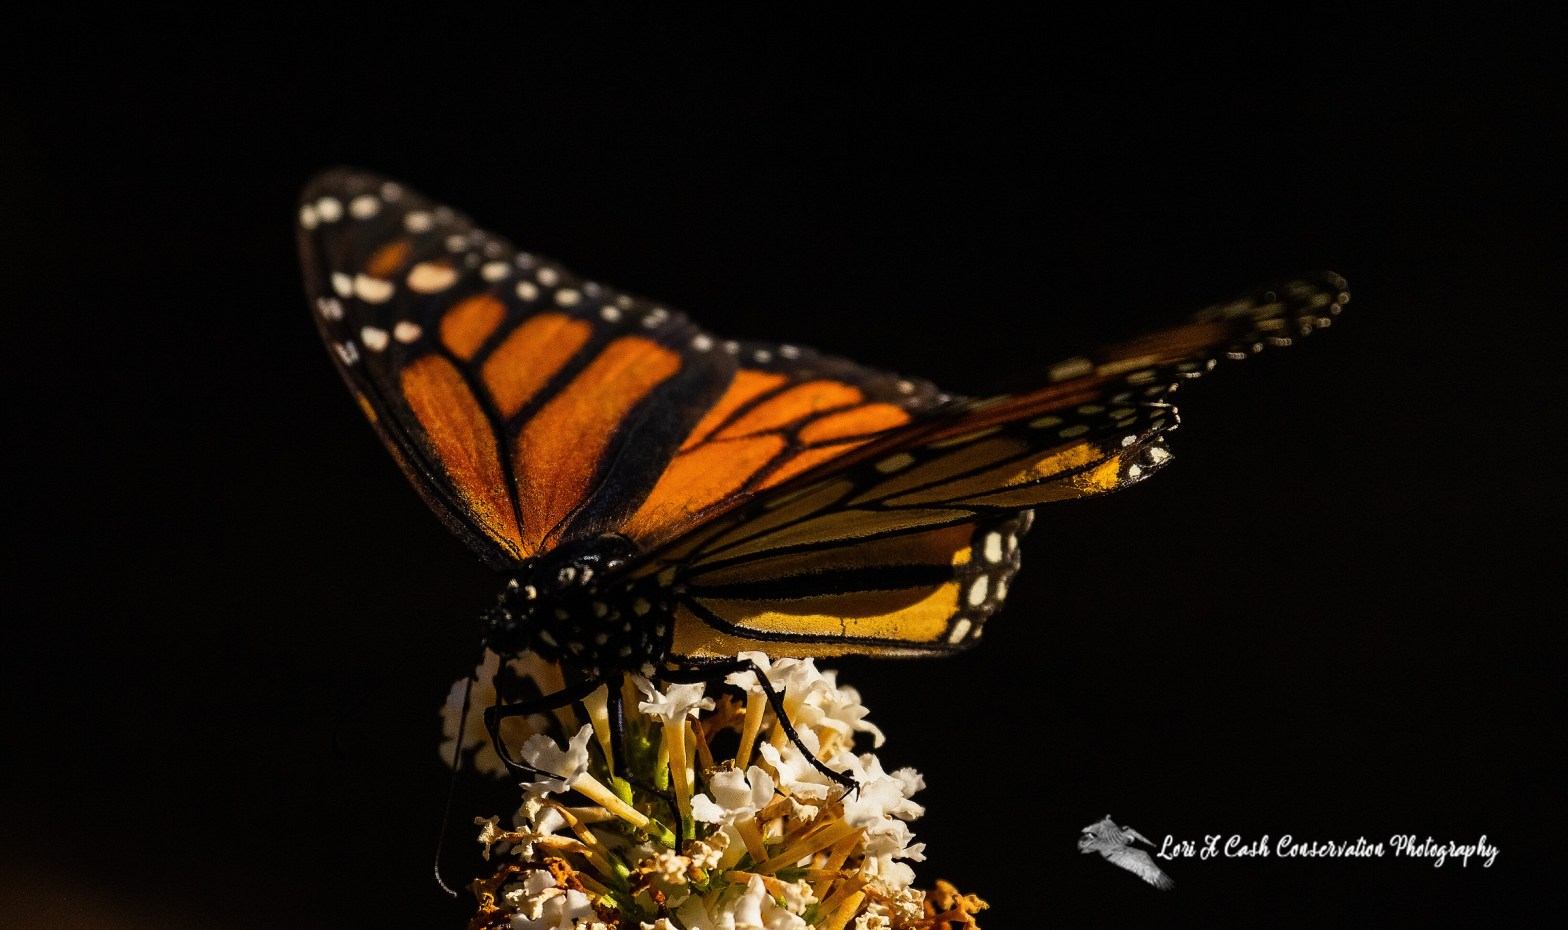 Monarch Monarch butterfly (Danaus plexippus) feeding on flower as the monarch butterfly is in decline and there are ways to protect the monarch butterfly